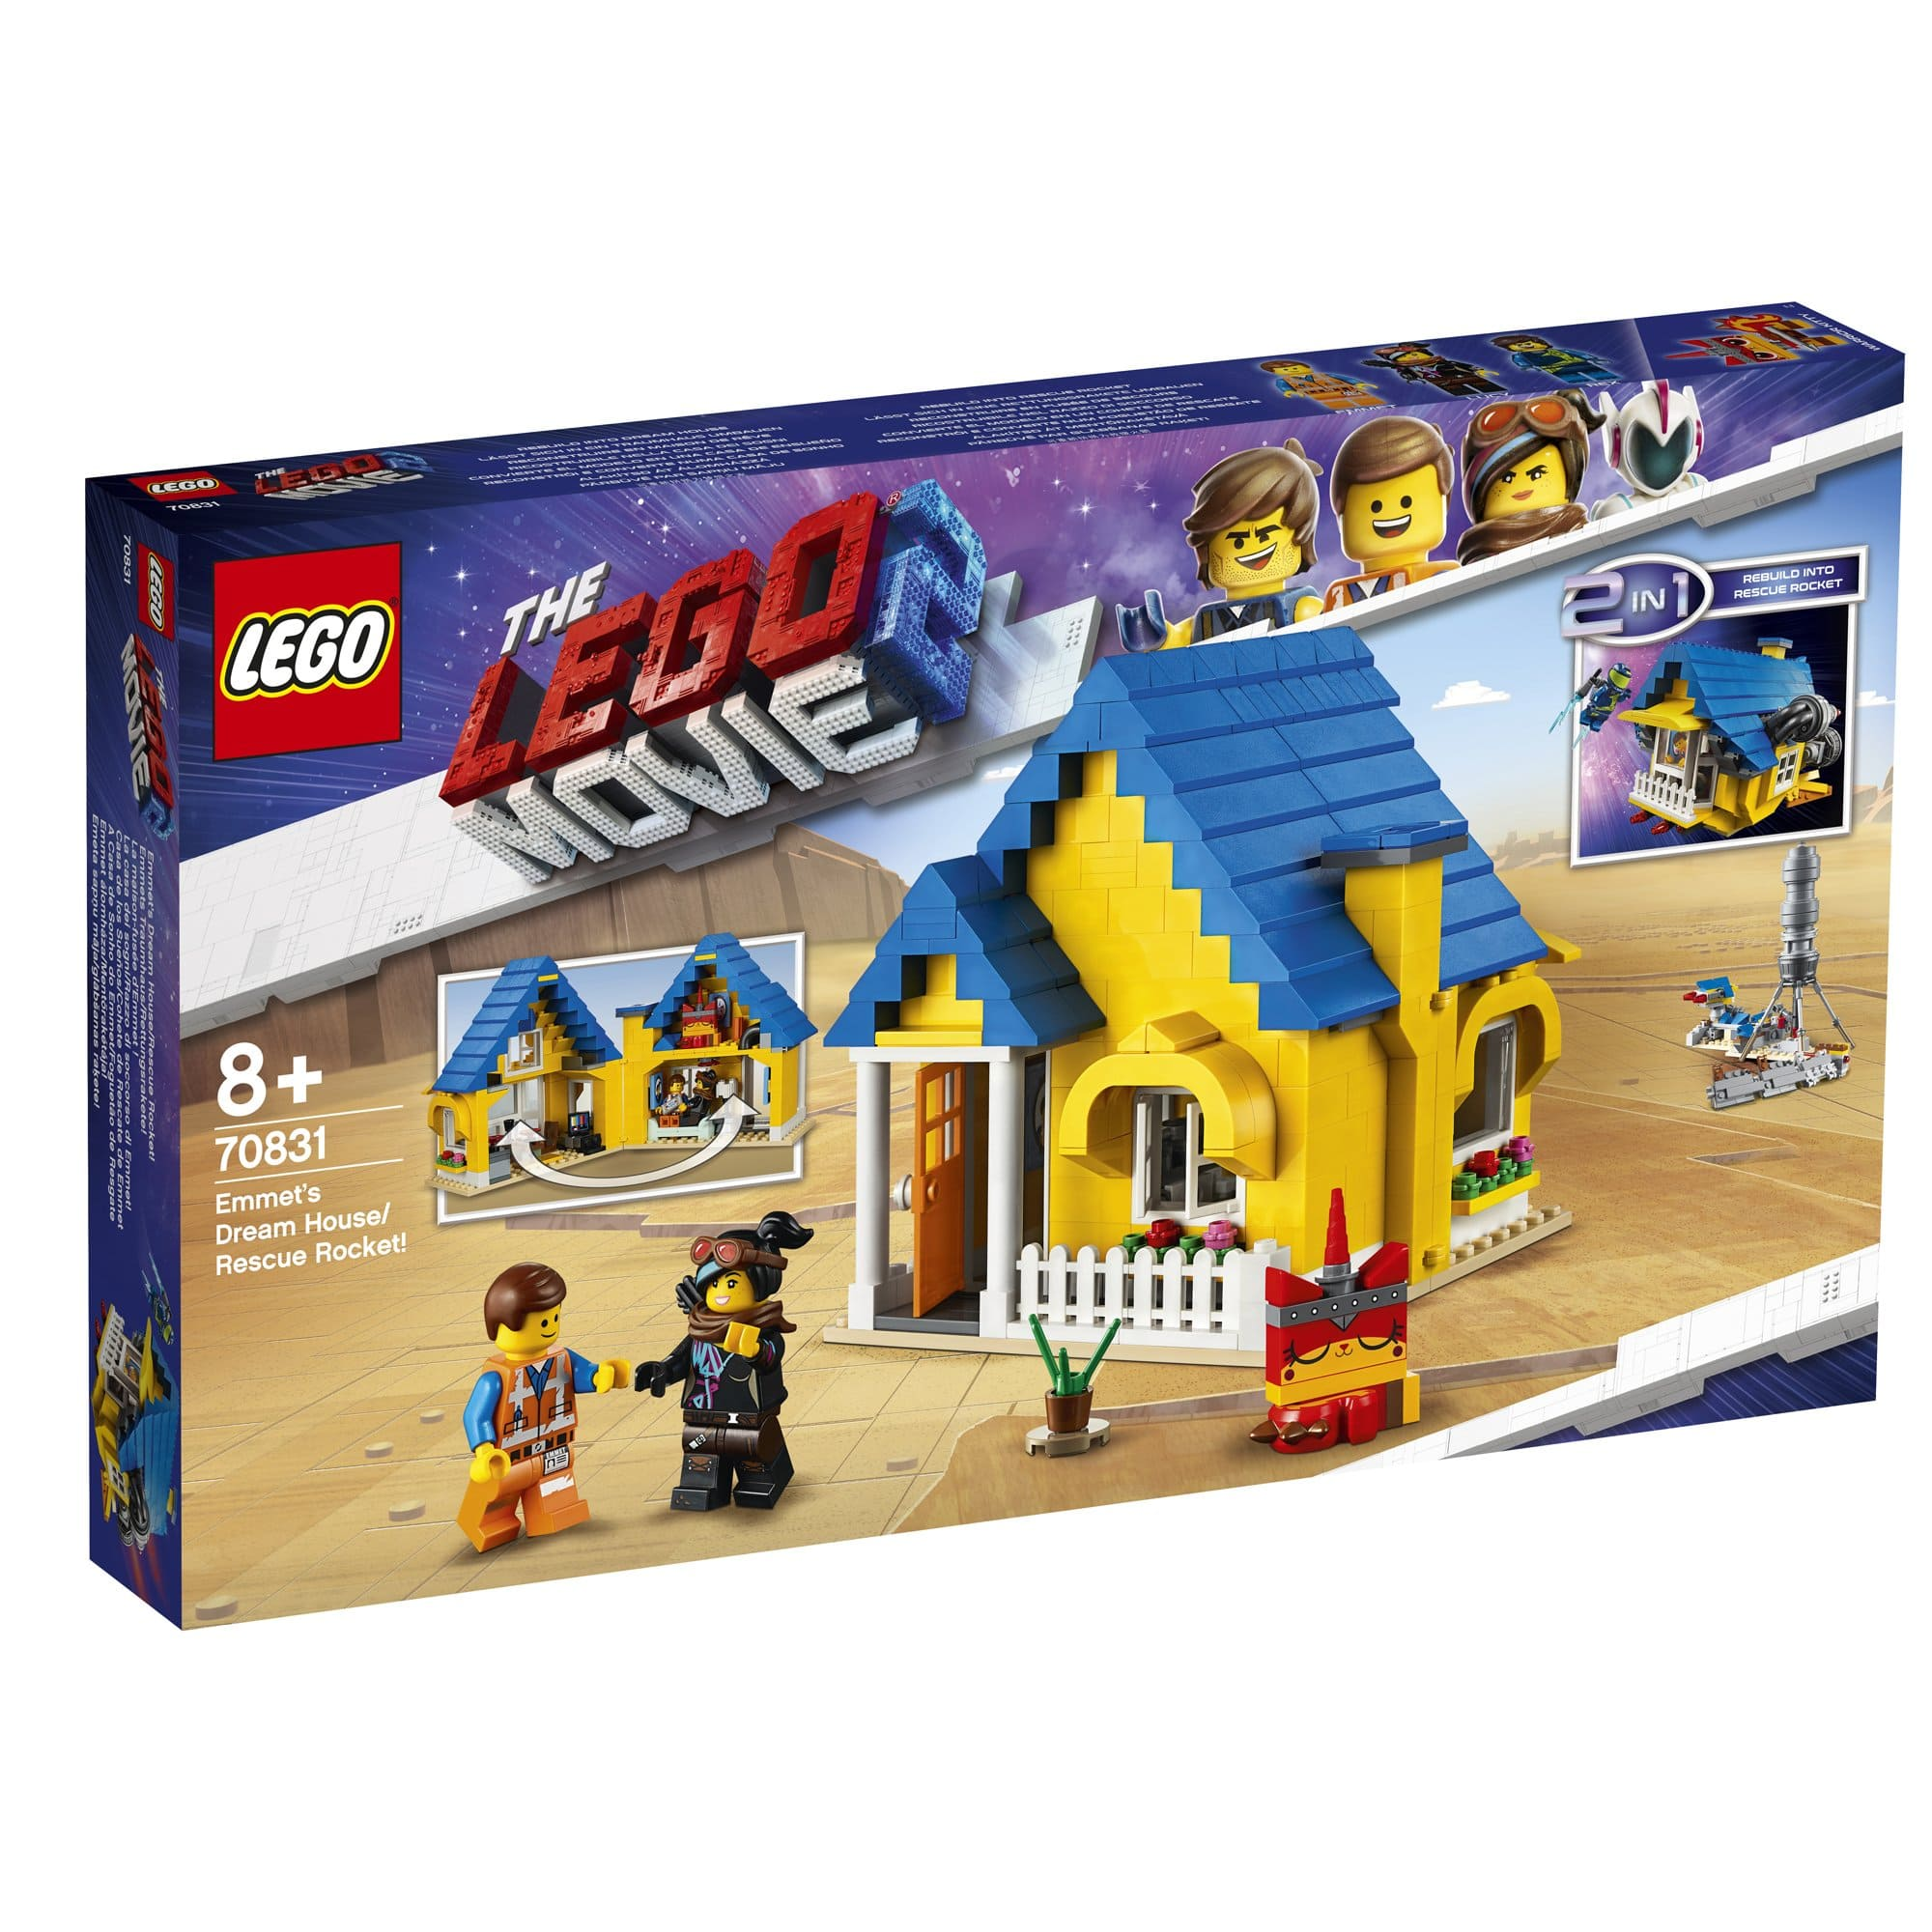 LEGO 樂高積木 LEGO Movie 樂高玩電影2系列 70831 Emmet's Dream House/Rescue Rocket!